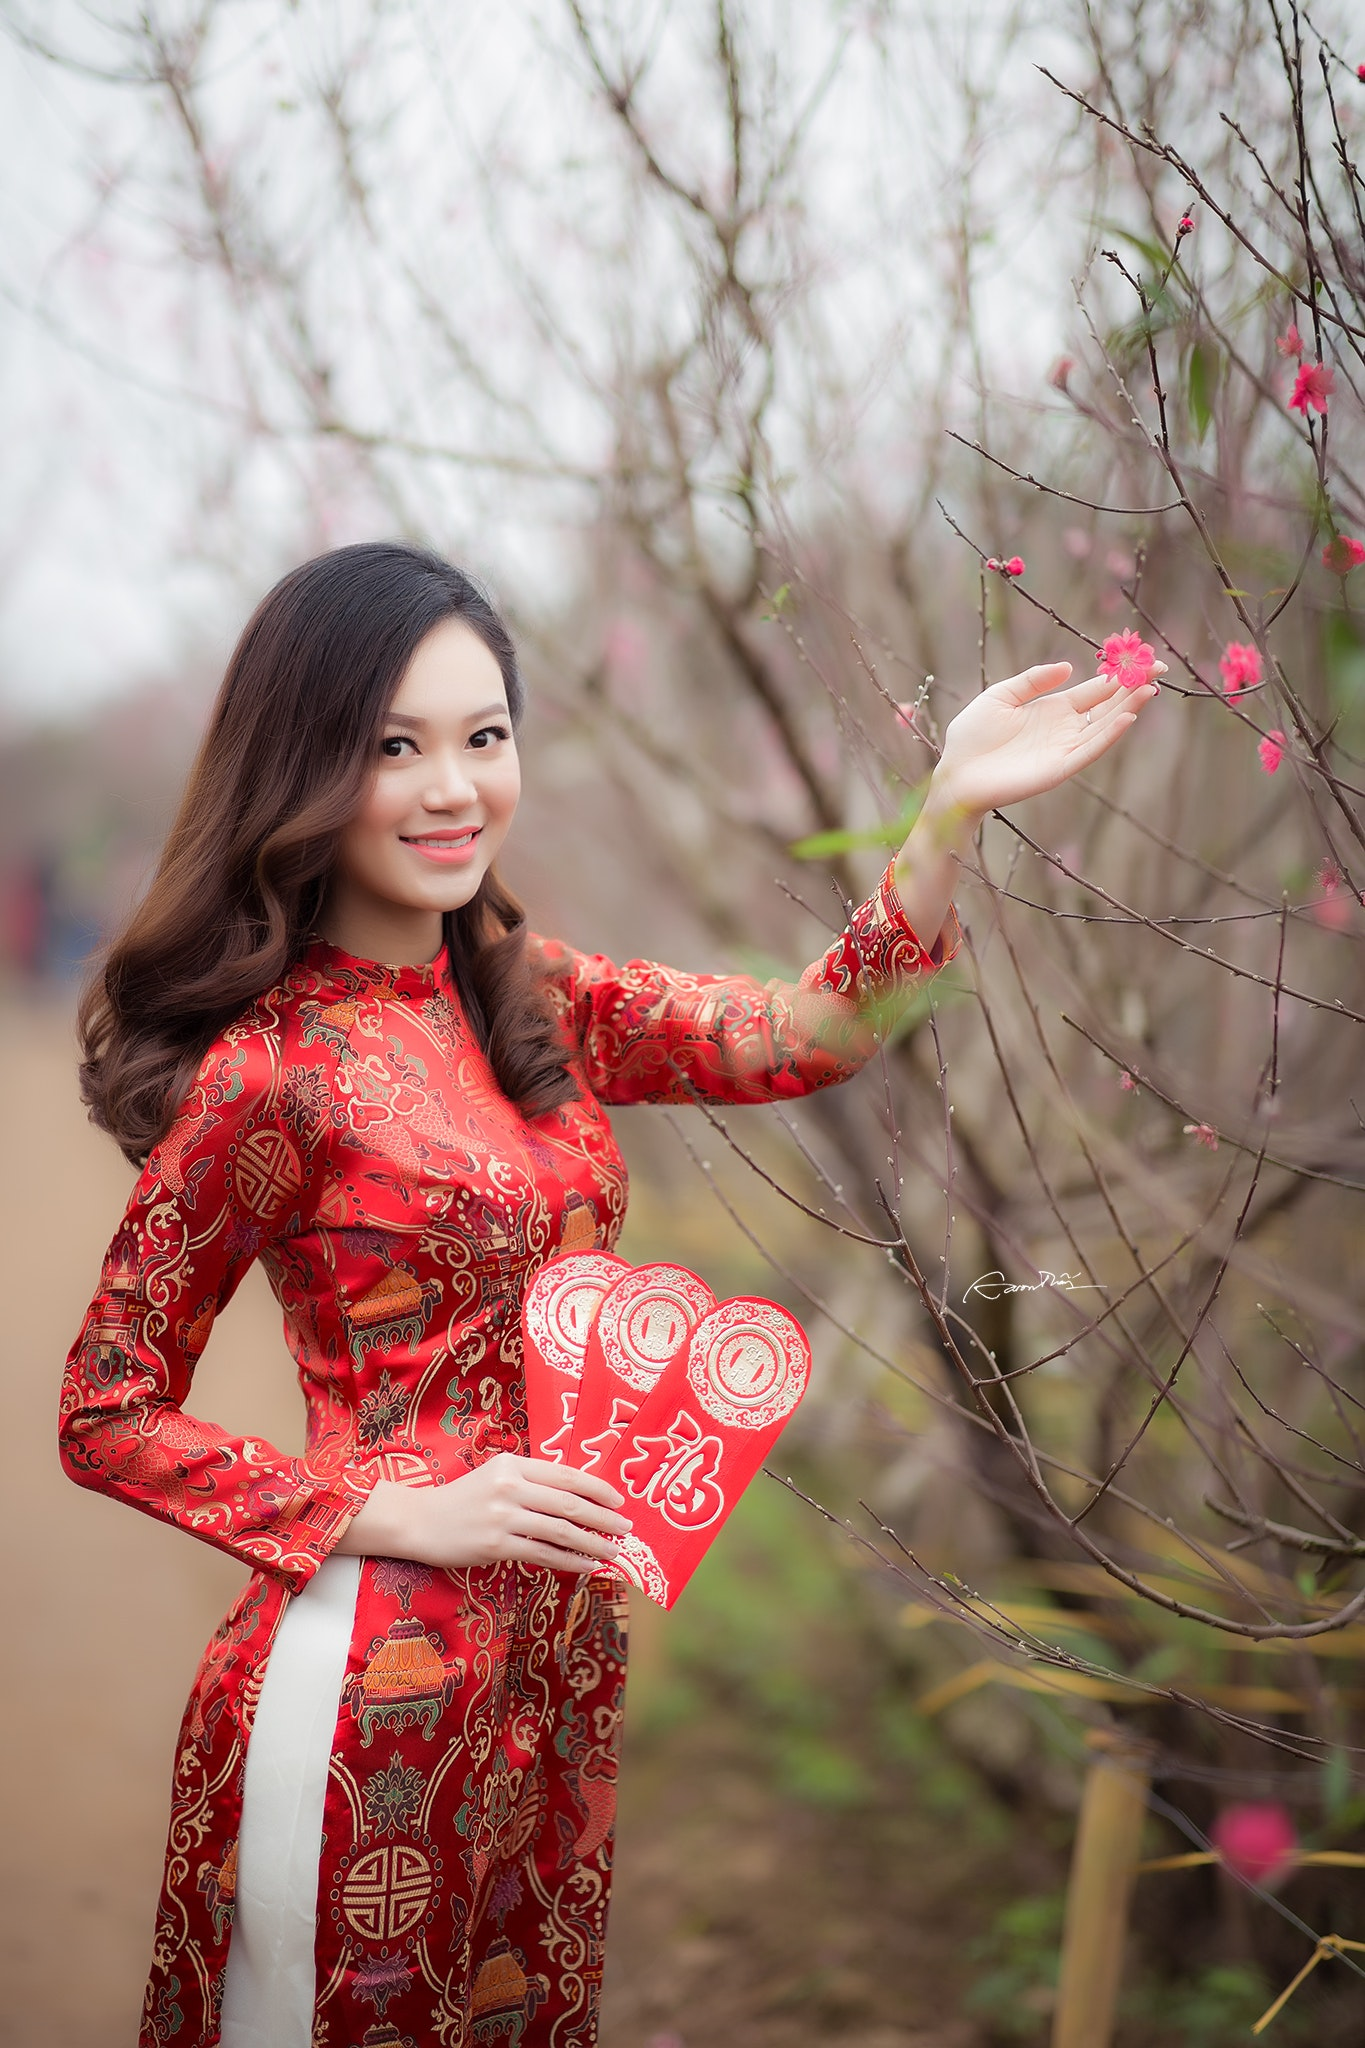 Woman wearing red long-sleeved dress holding pink petaled flower photo